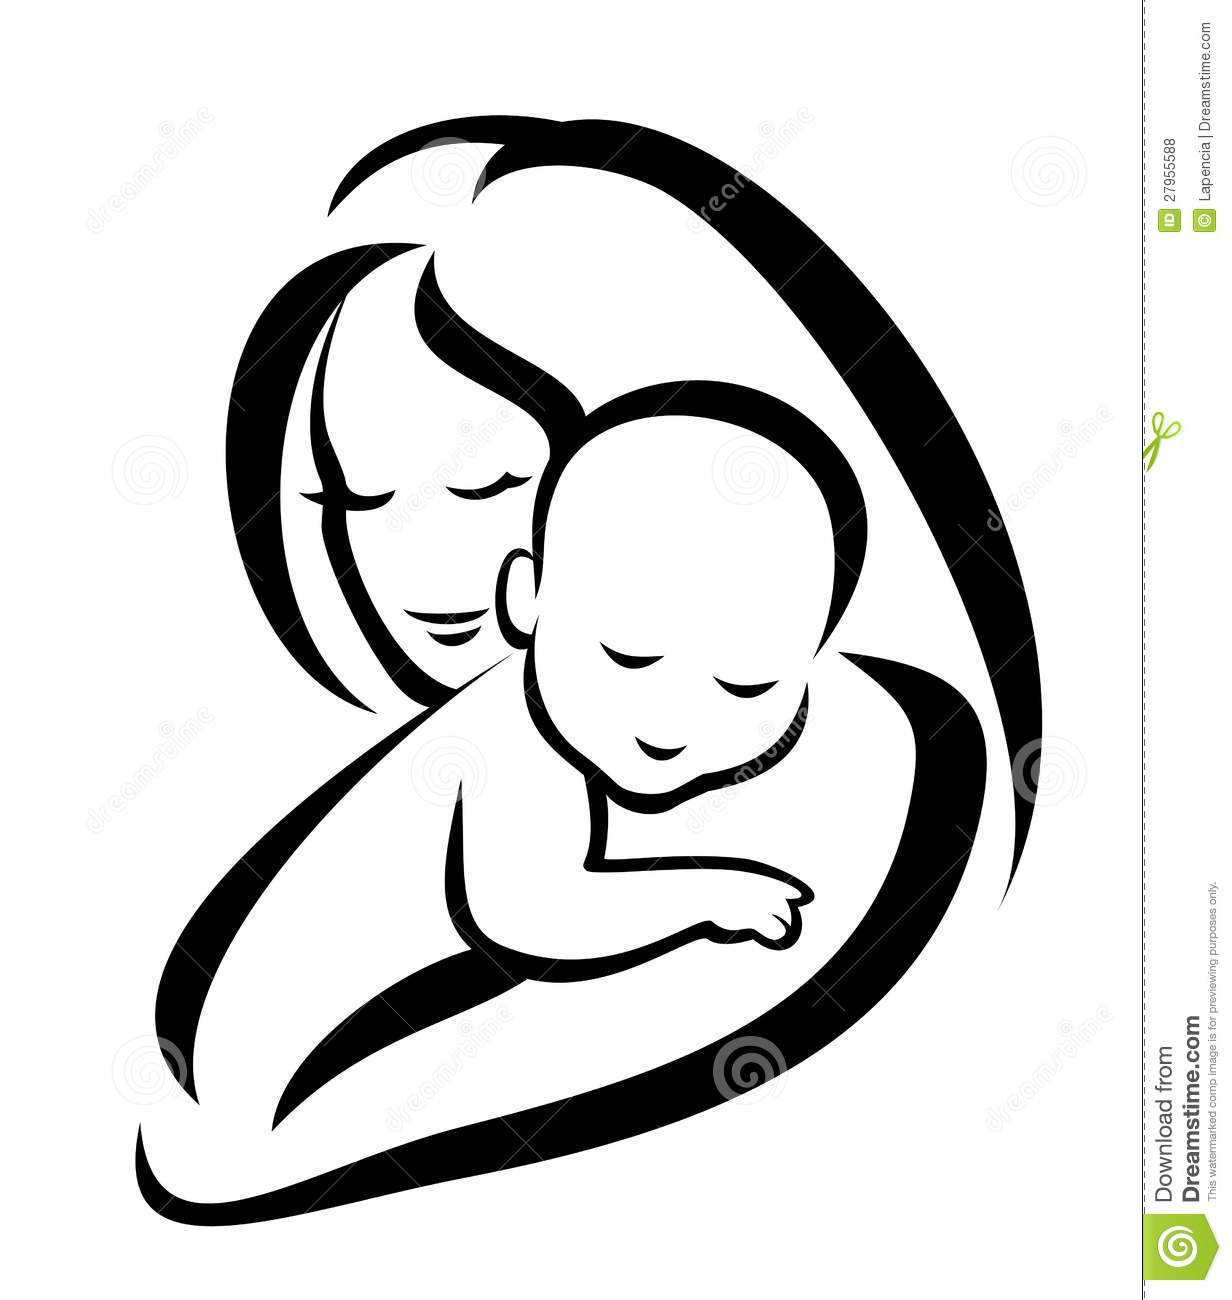 free clip art mother child - photo #25